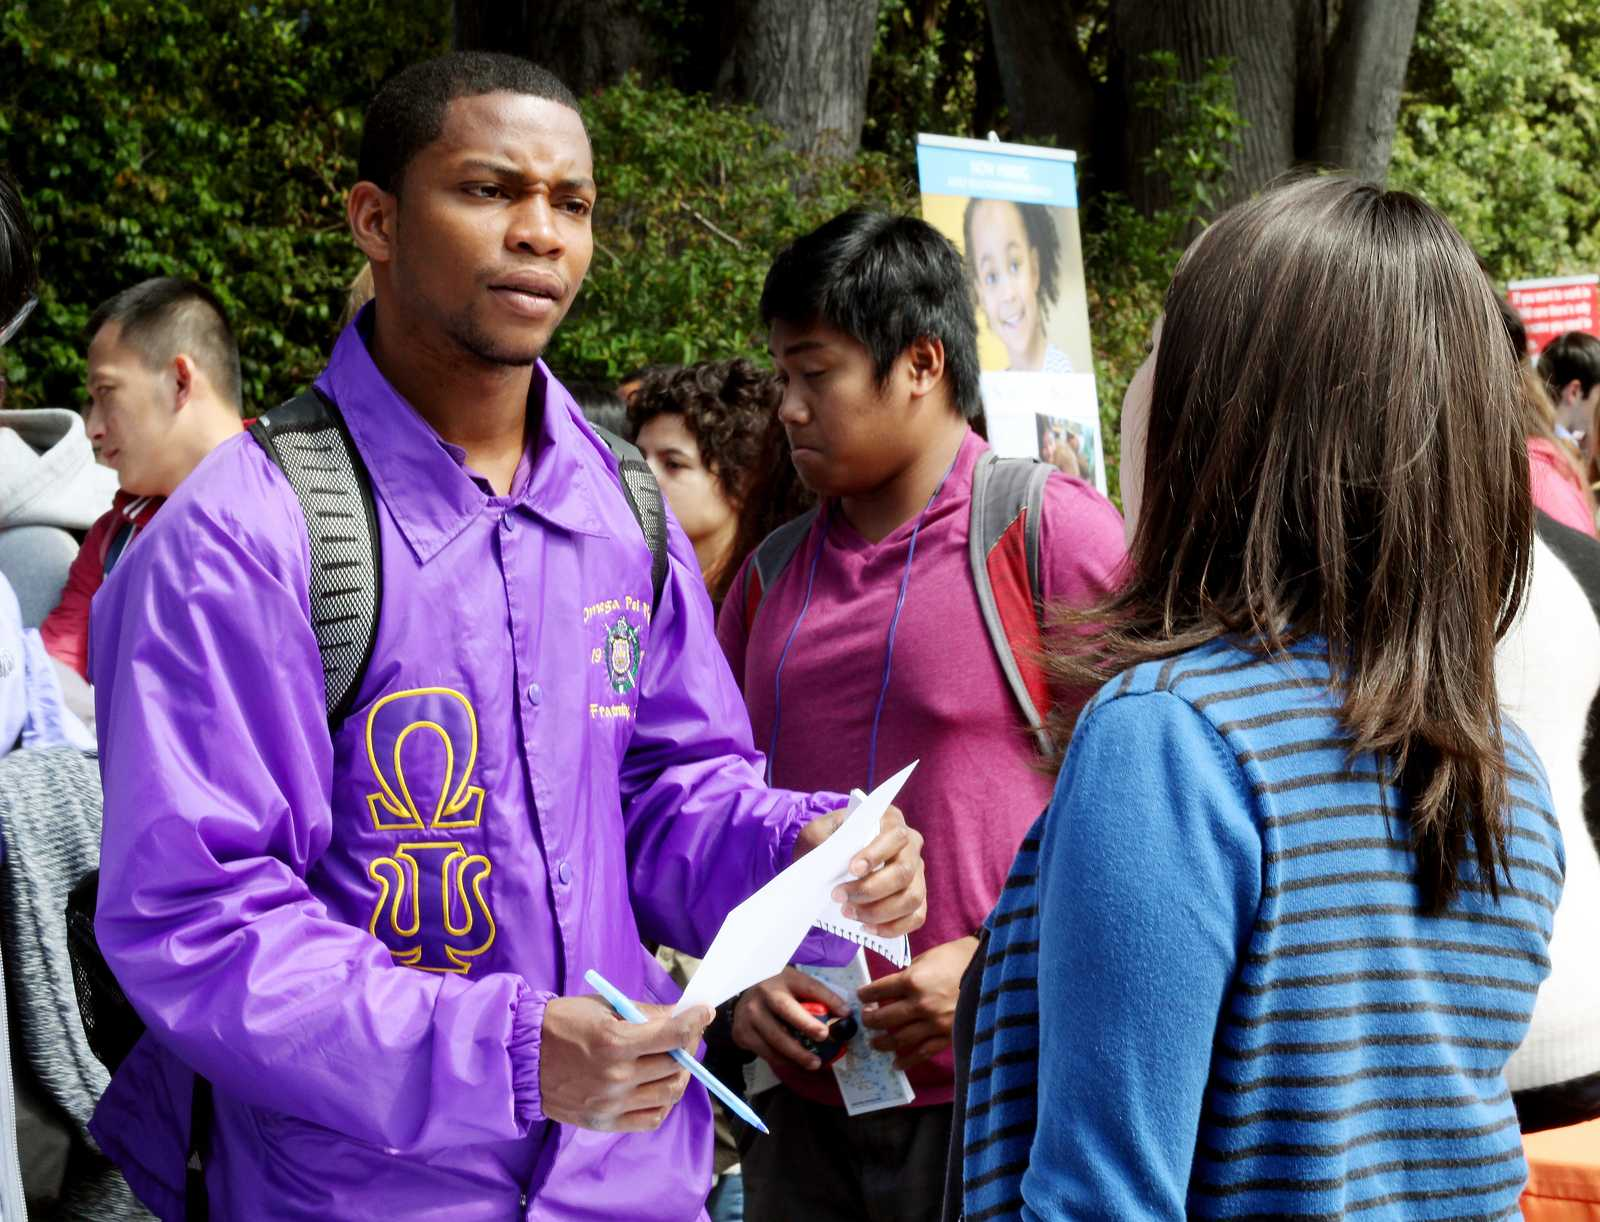 Shawn McGriff (left), a Liberal Studies major, speaks to Zoila Baltodano, the business office manager at Cesar Chavez Student Center, at a Part-Time Job Fair held in the quad at SF State, on Sept. 12, 2013. The event was put together by the Student Involvement and Career Center as a for students to meet on and off campus employers offering part-time positions. Photo by Gavin McIntyre / Xpress